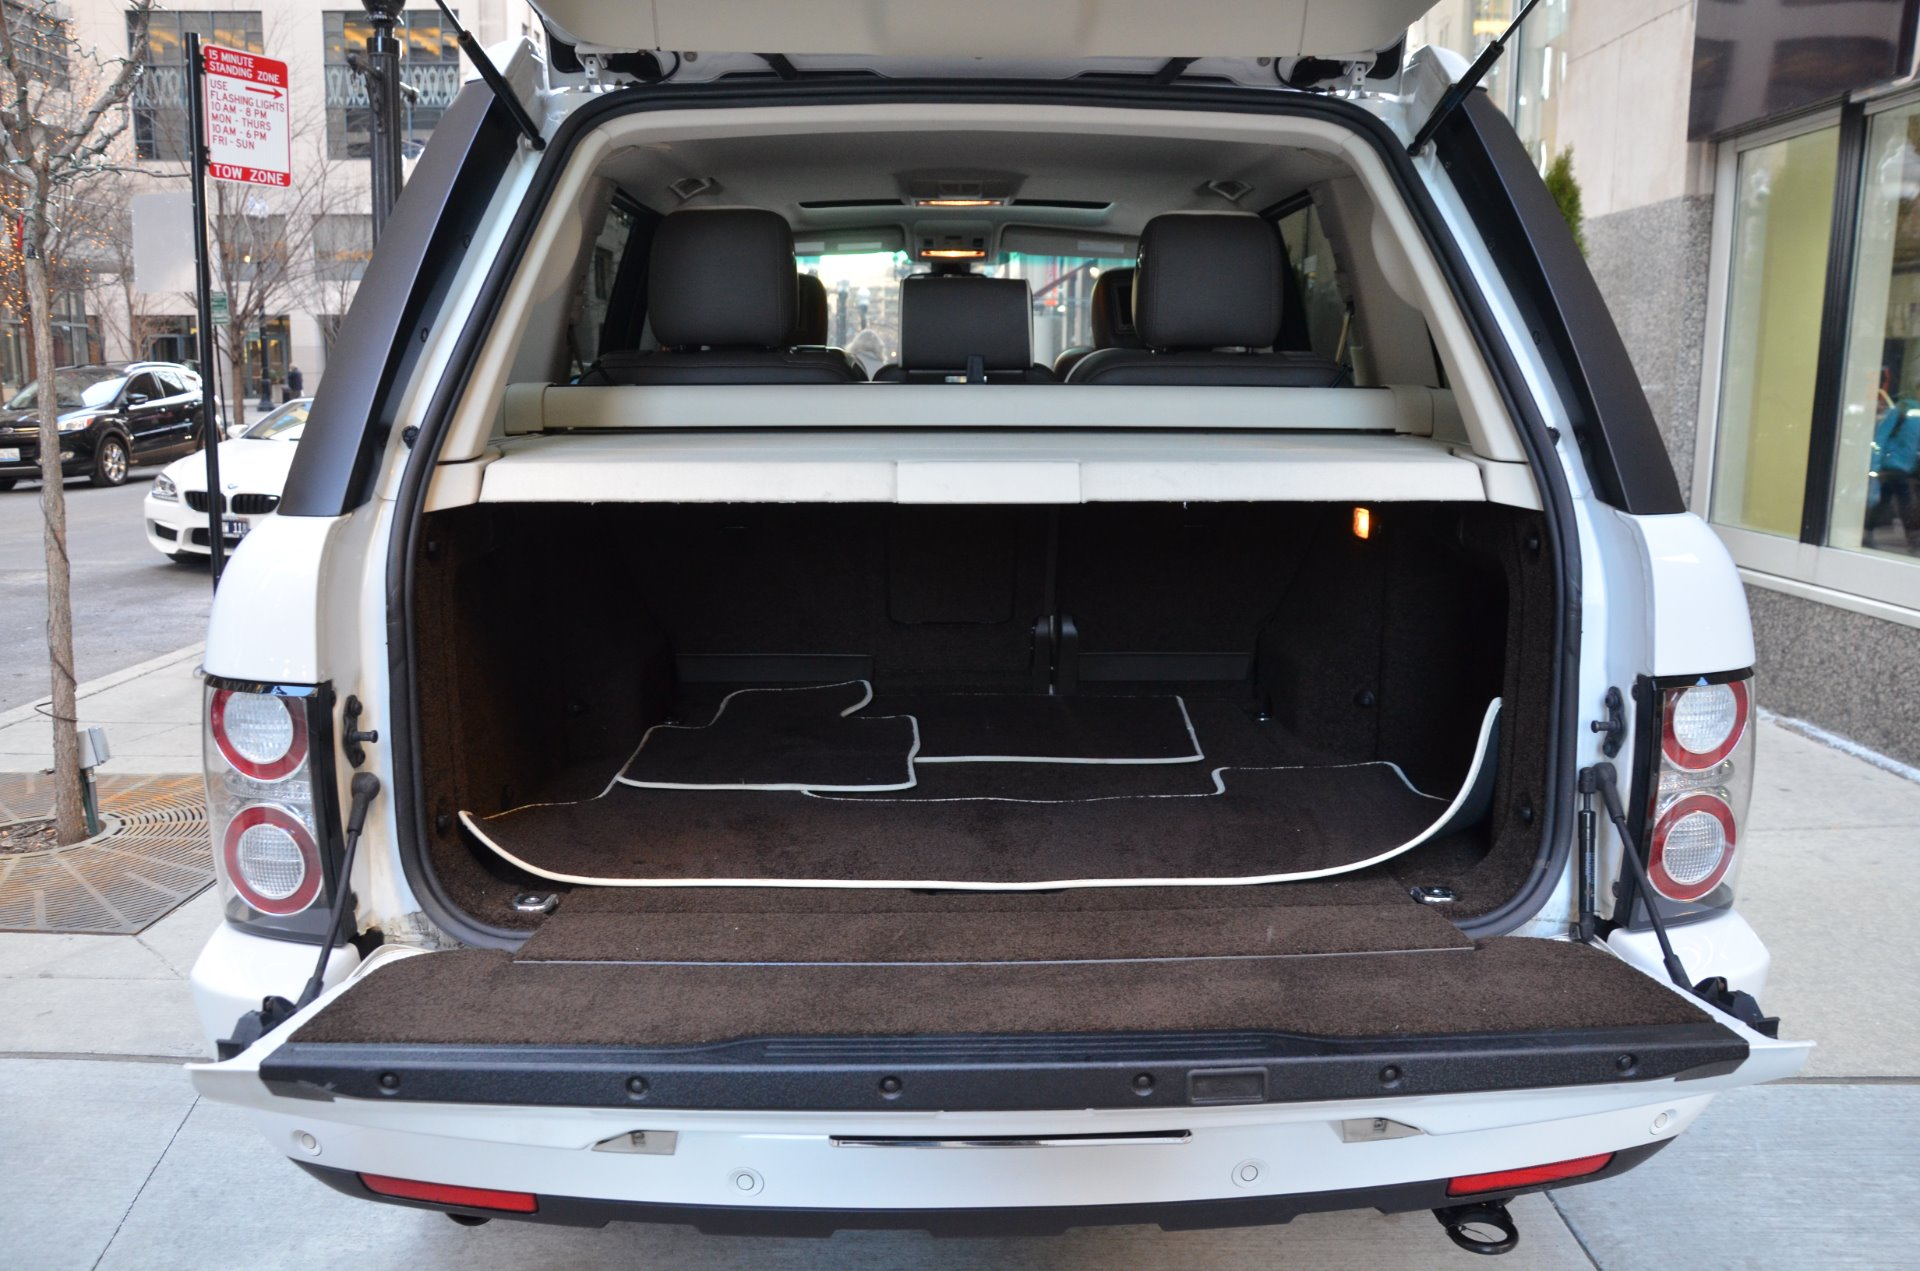 2012 Land Rover Range Rover Supercharged Stock GC1825A for sale